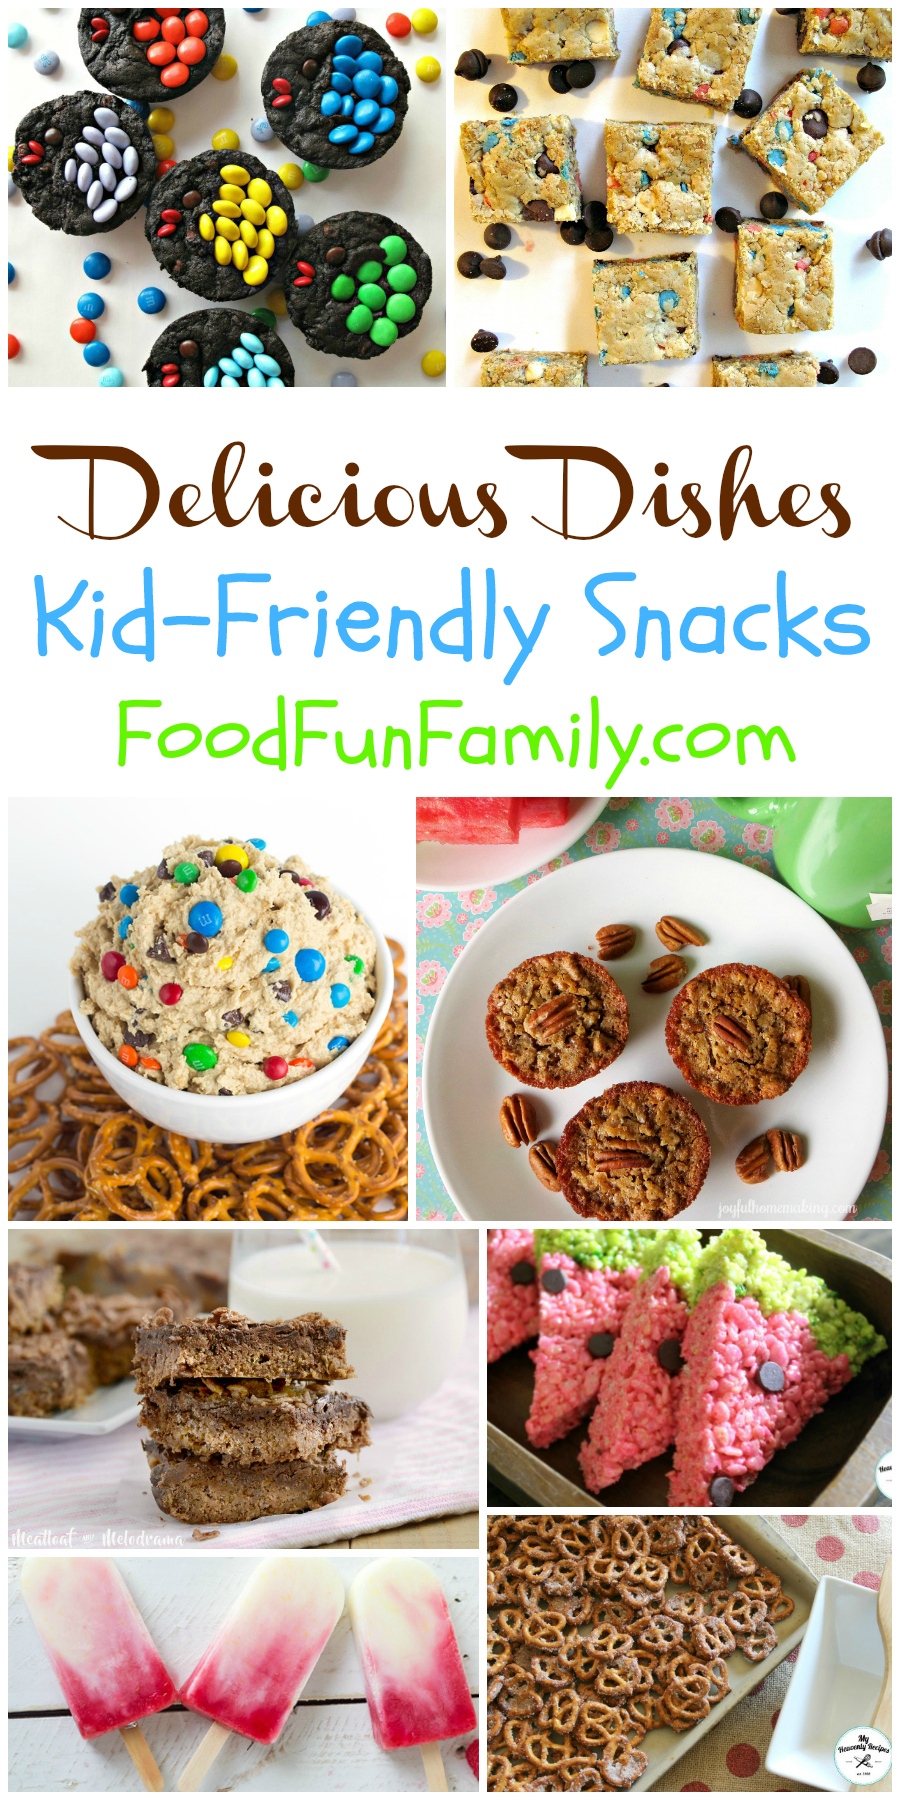 Kid-friendly snacks (even moms and dads will love these treats!) - a Delicious Dishes recipe party